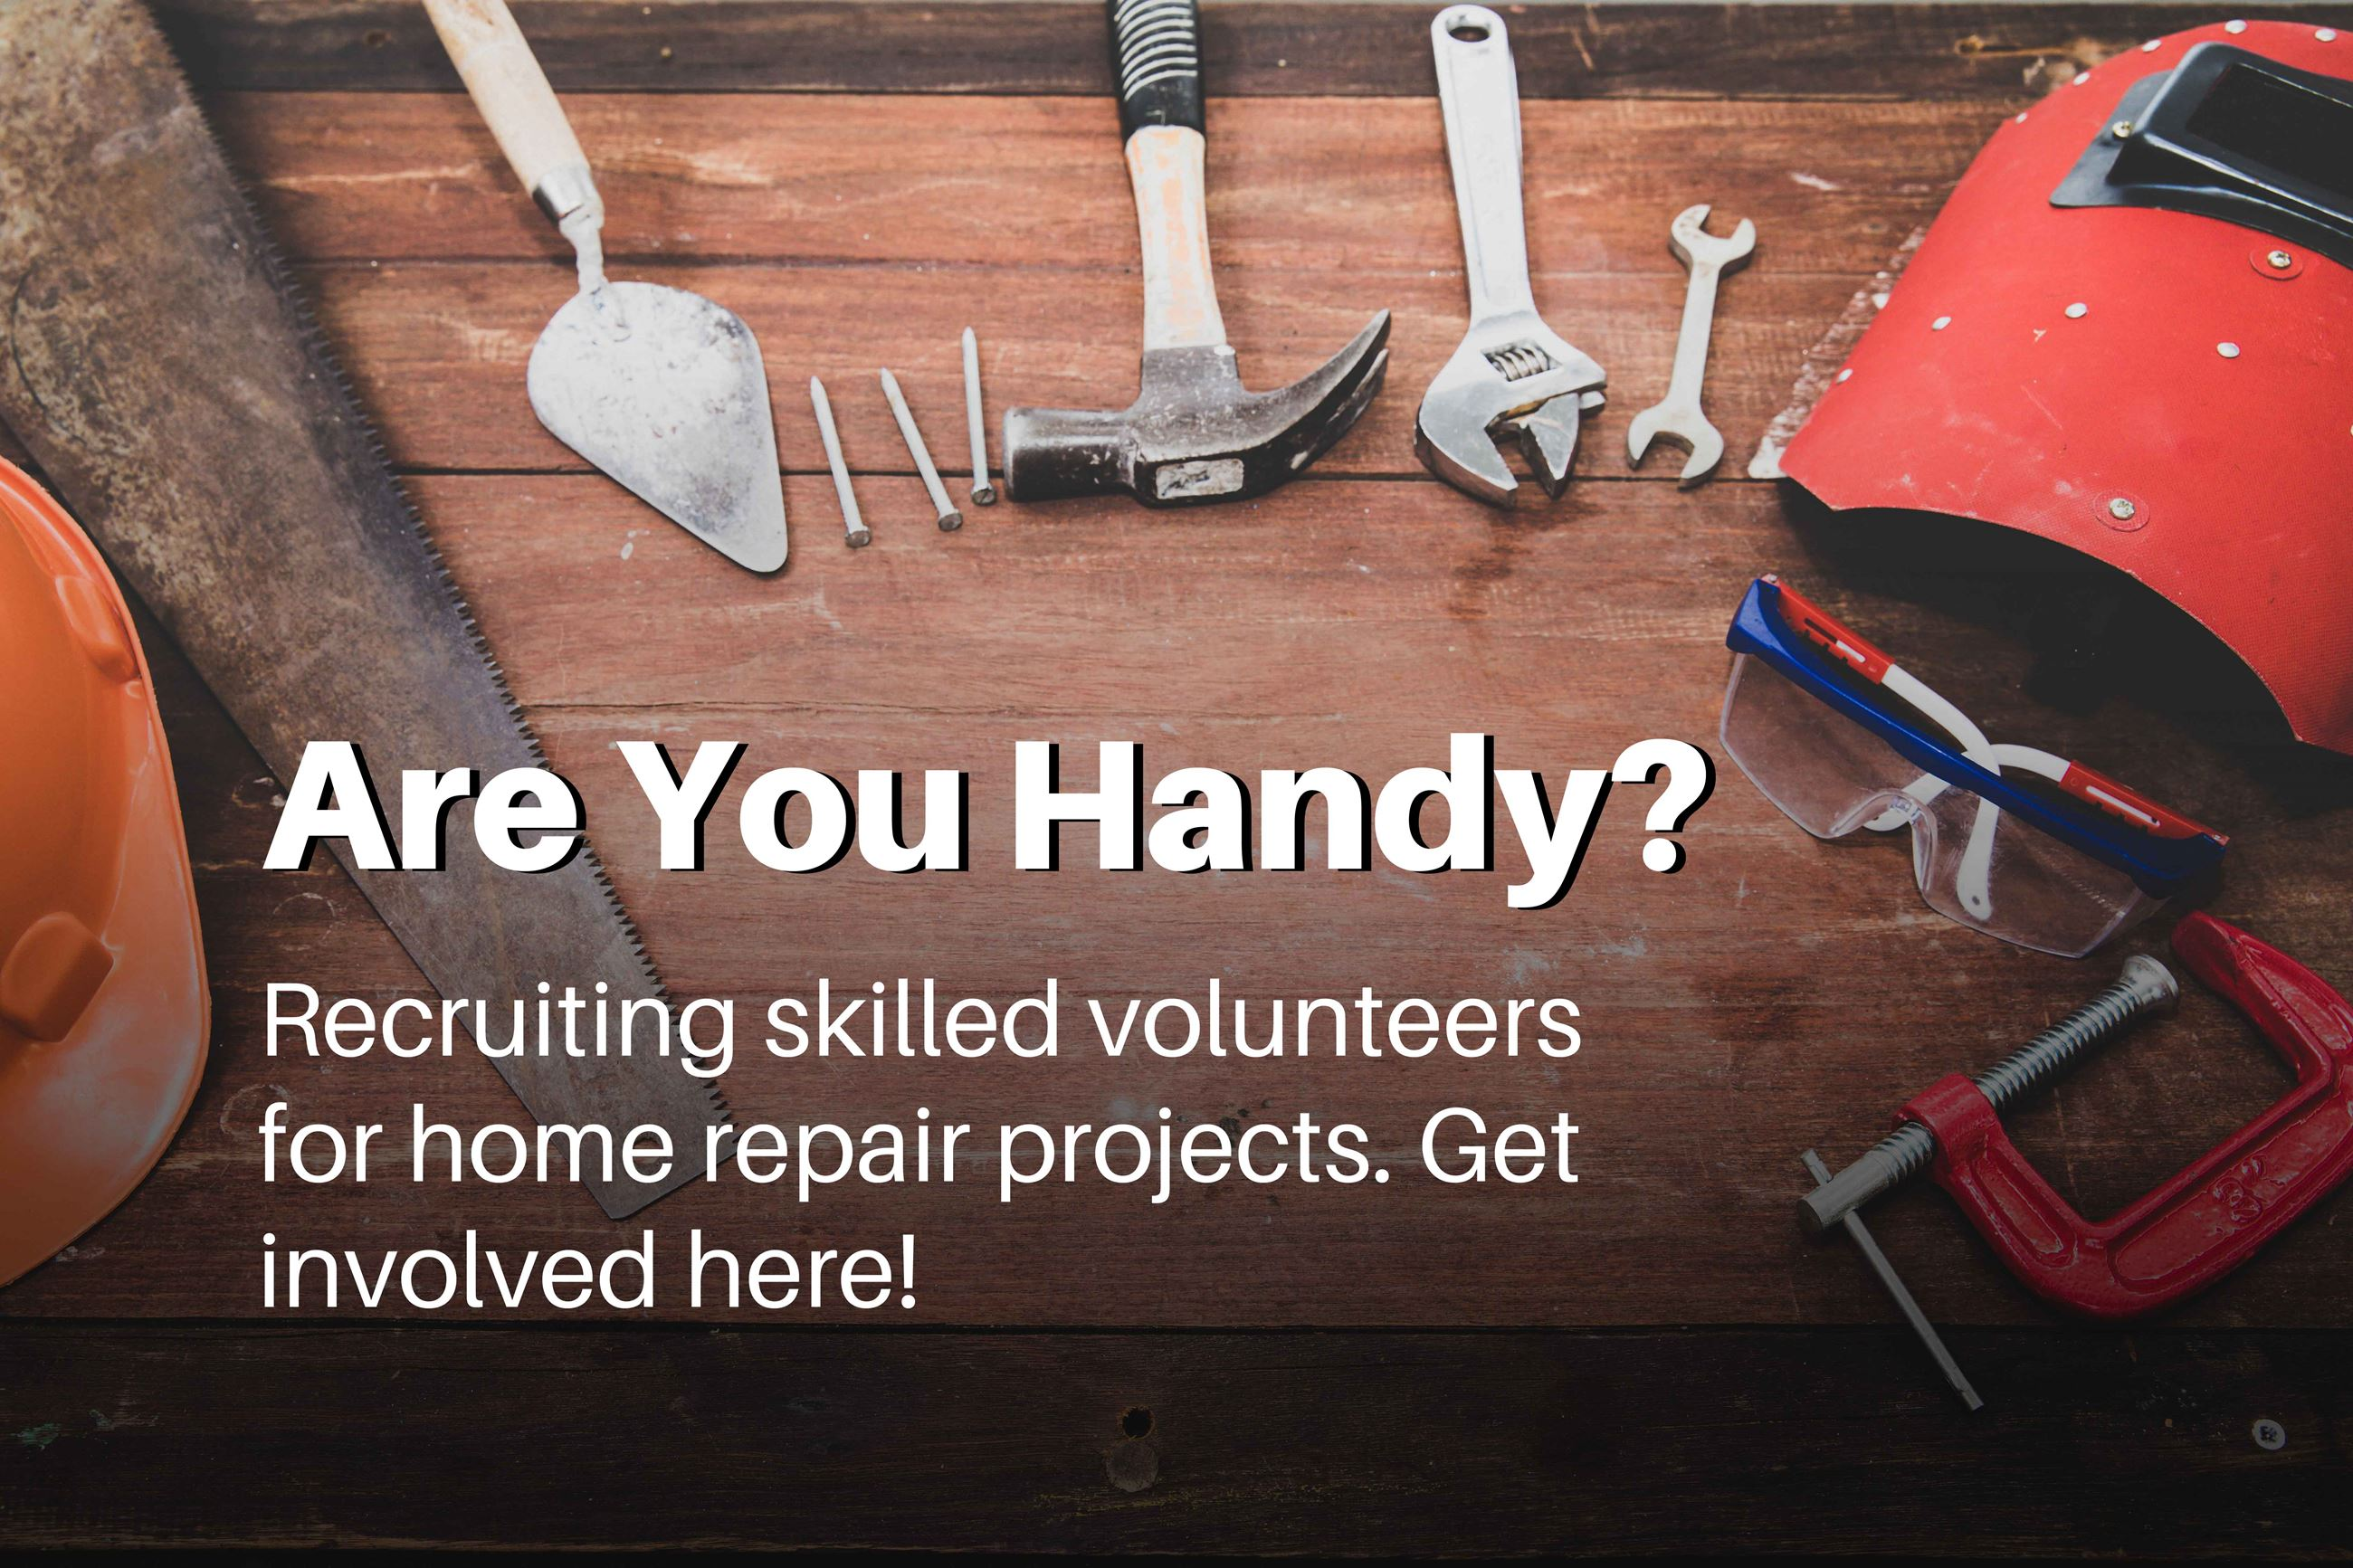 Are you handy? Recruiting skilled volunteers for home repair projects